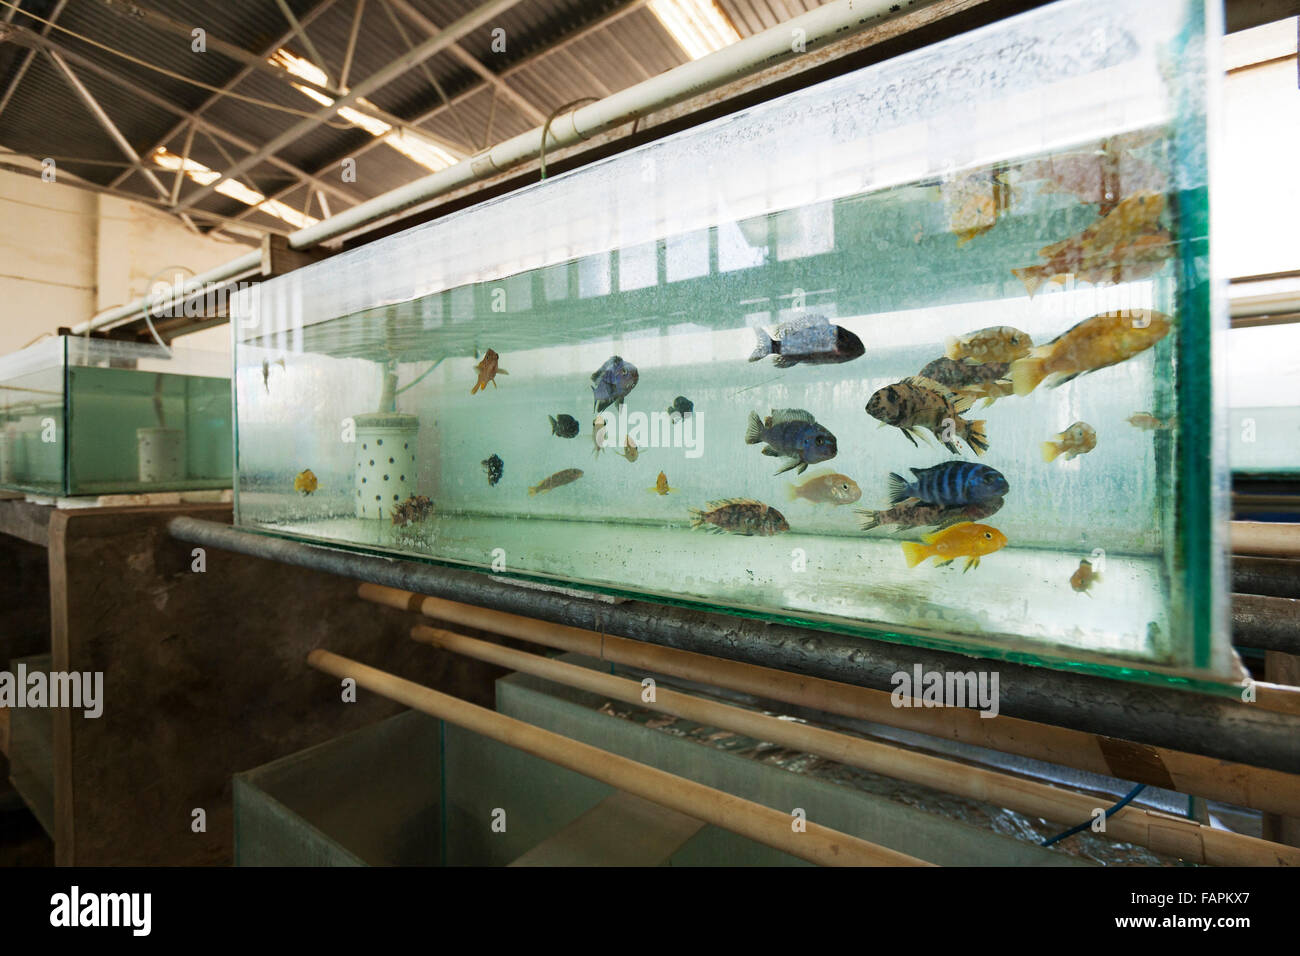 Tanks used for breeding Malawi Cichlid fish Senga Bay, Malawi  November 2012 - Stock Image